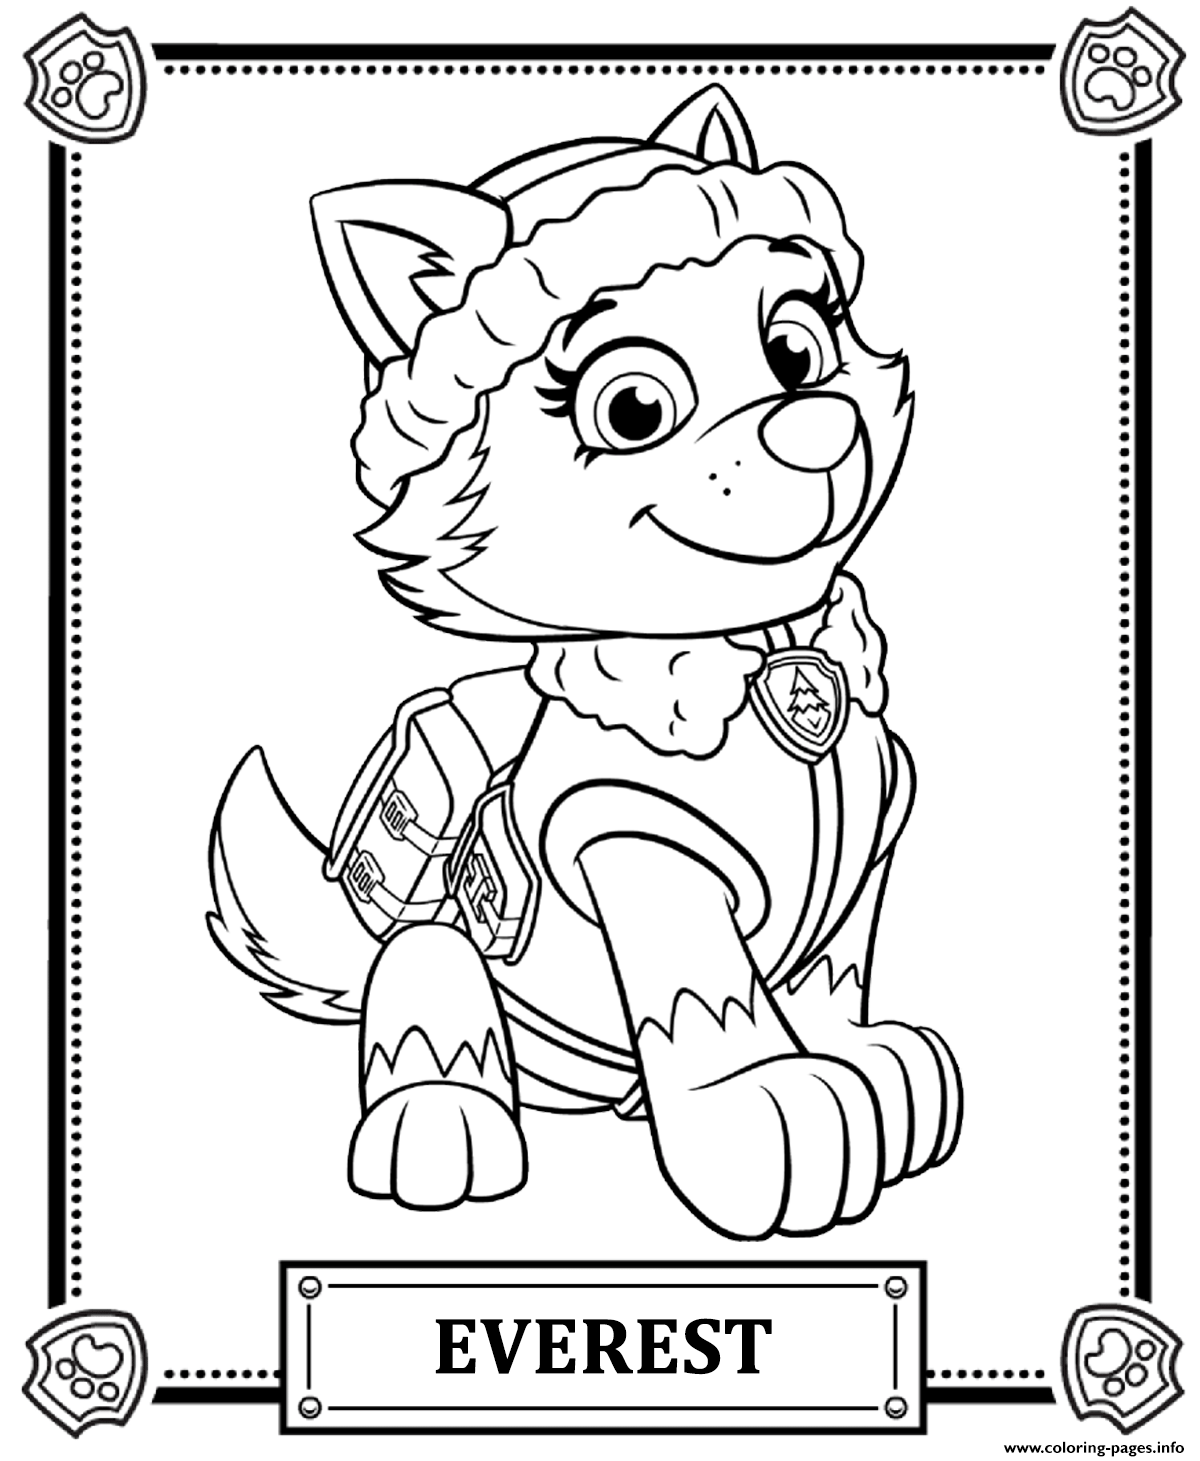 Print paw patrol everest coloring pages | dekoracijos | Pinterest ...